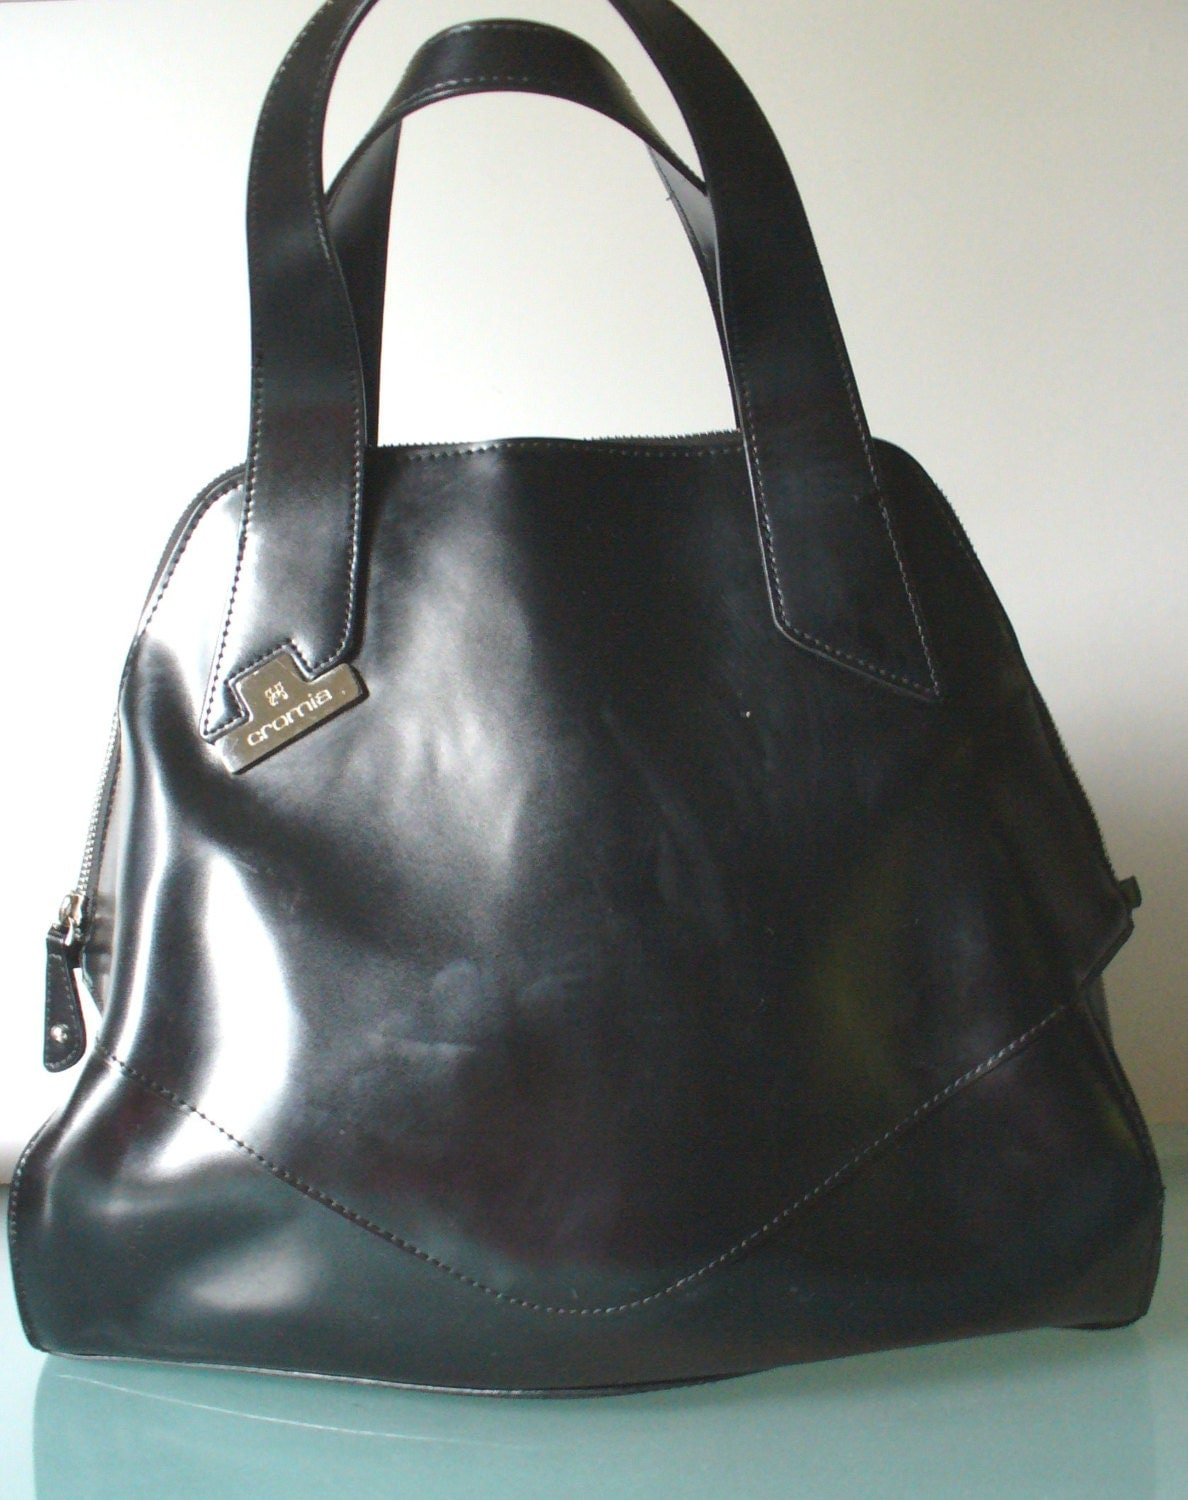 Crosia Handbags : Made in Italy Large Cromia Bowling Bag Style by EurotrashItaly